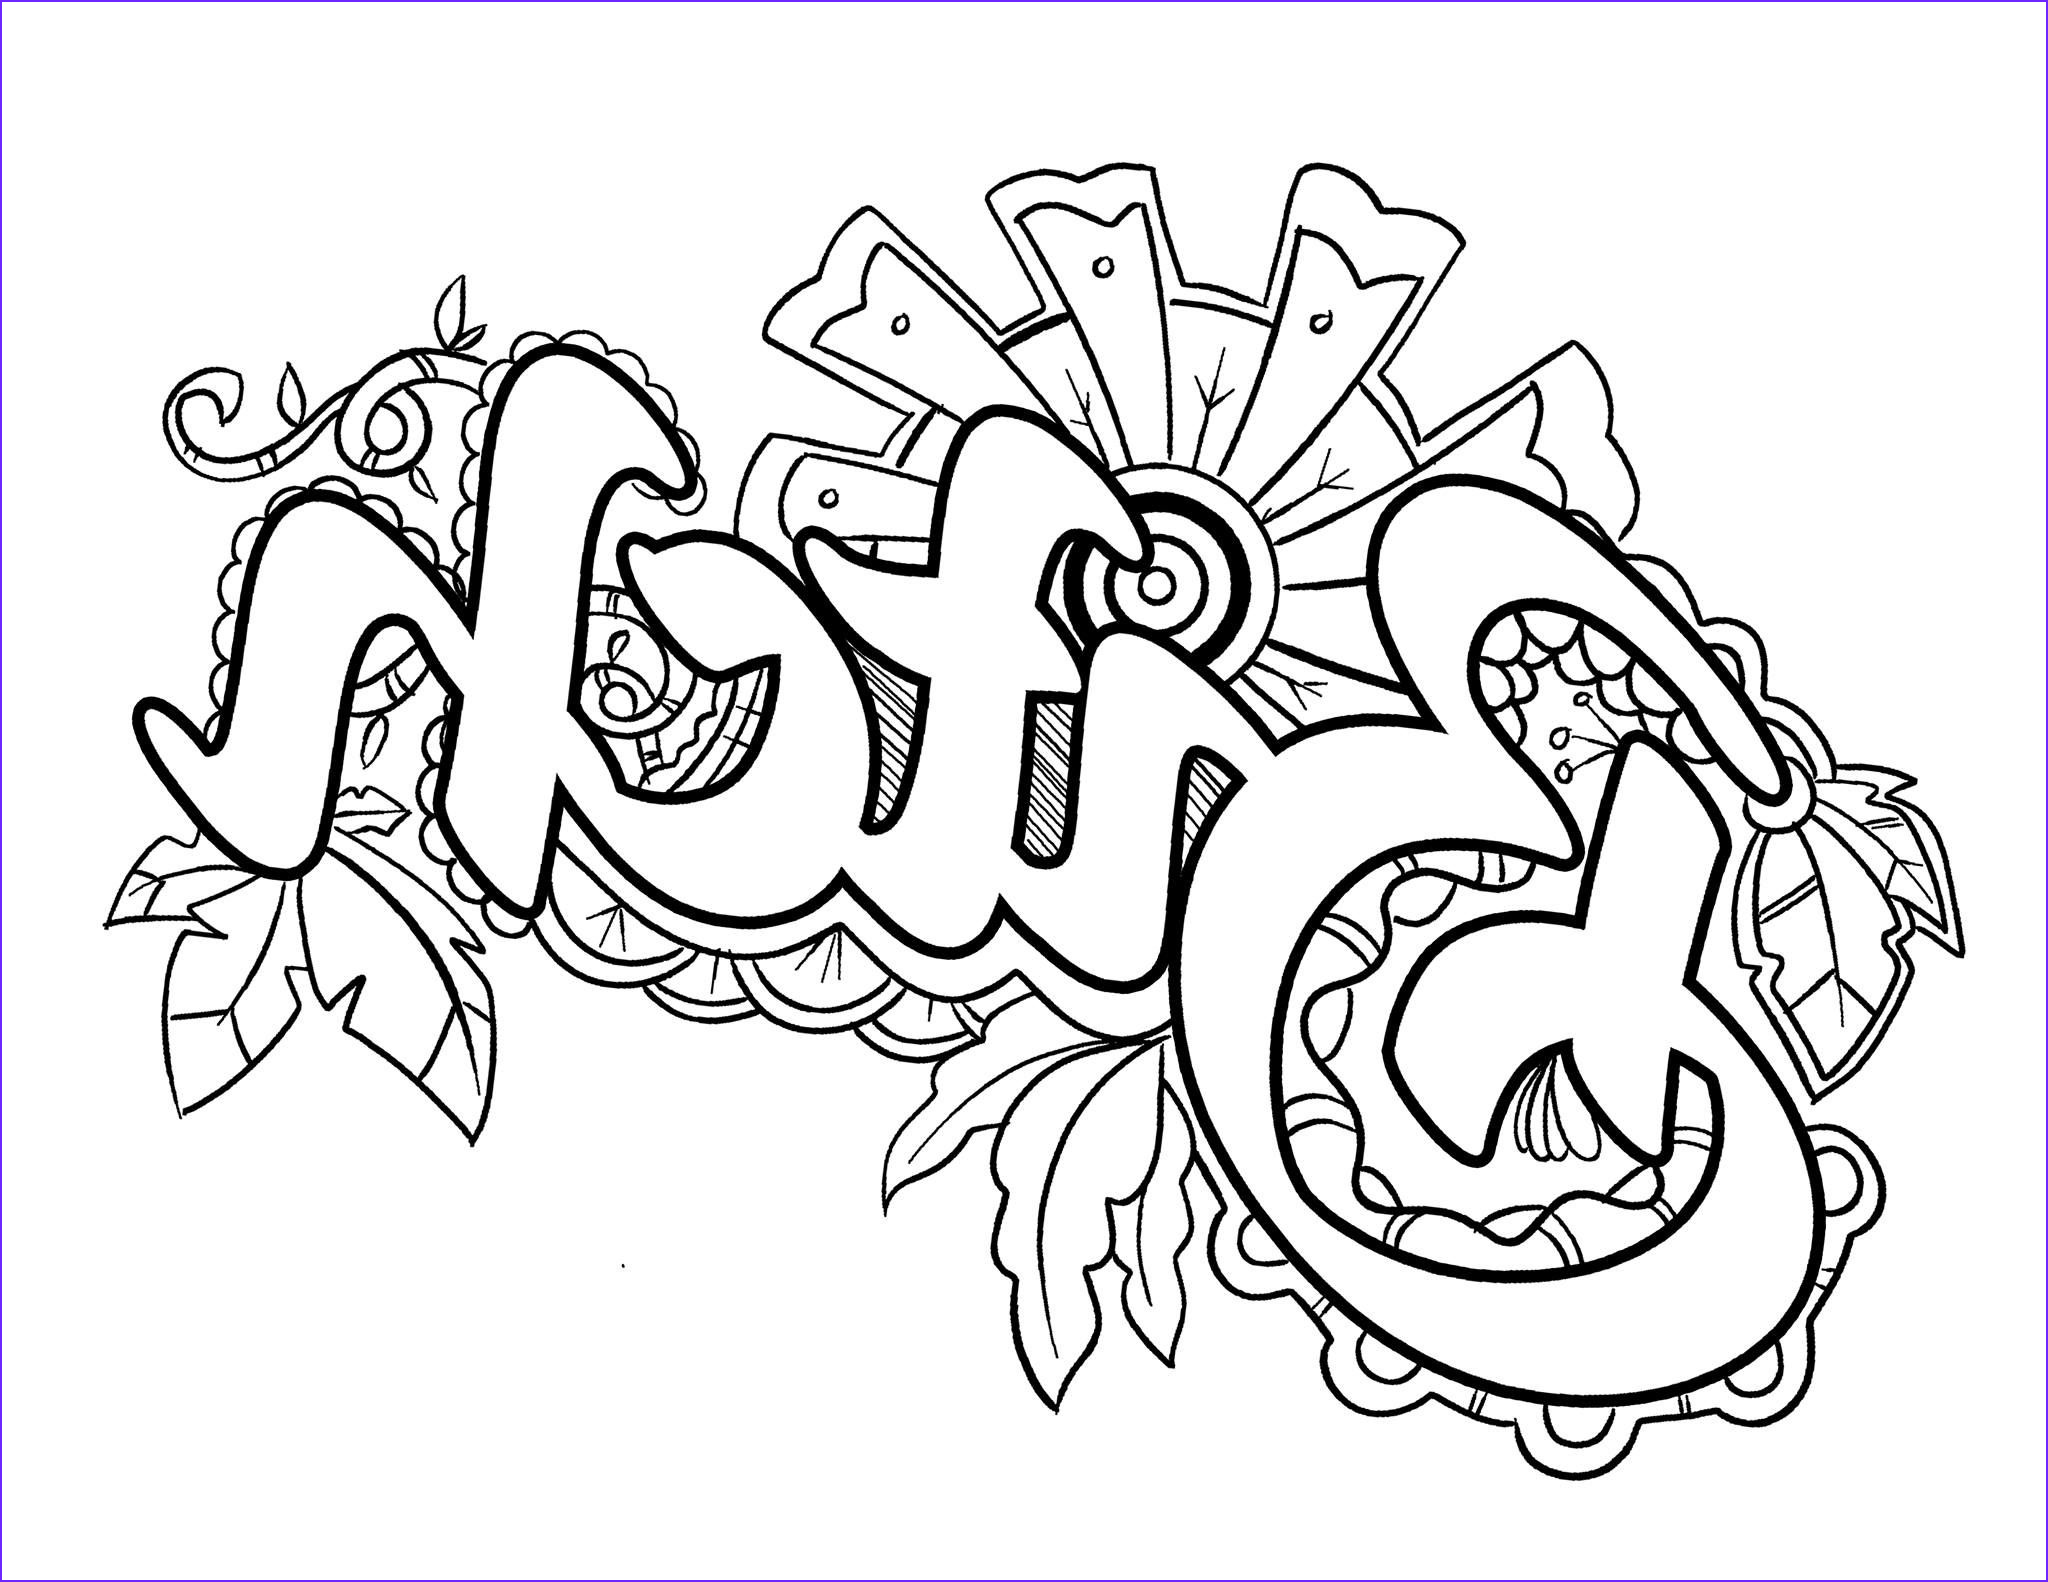 Cuss Word Coloring Pages Unique Photos Pin by Tami Jacobs On Coloring Hippie